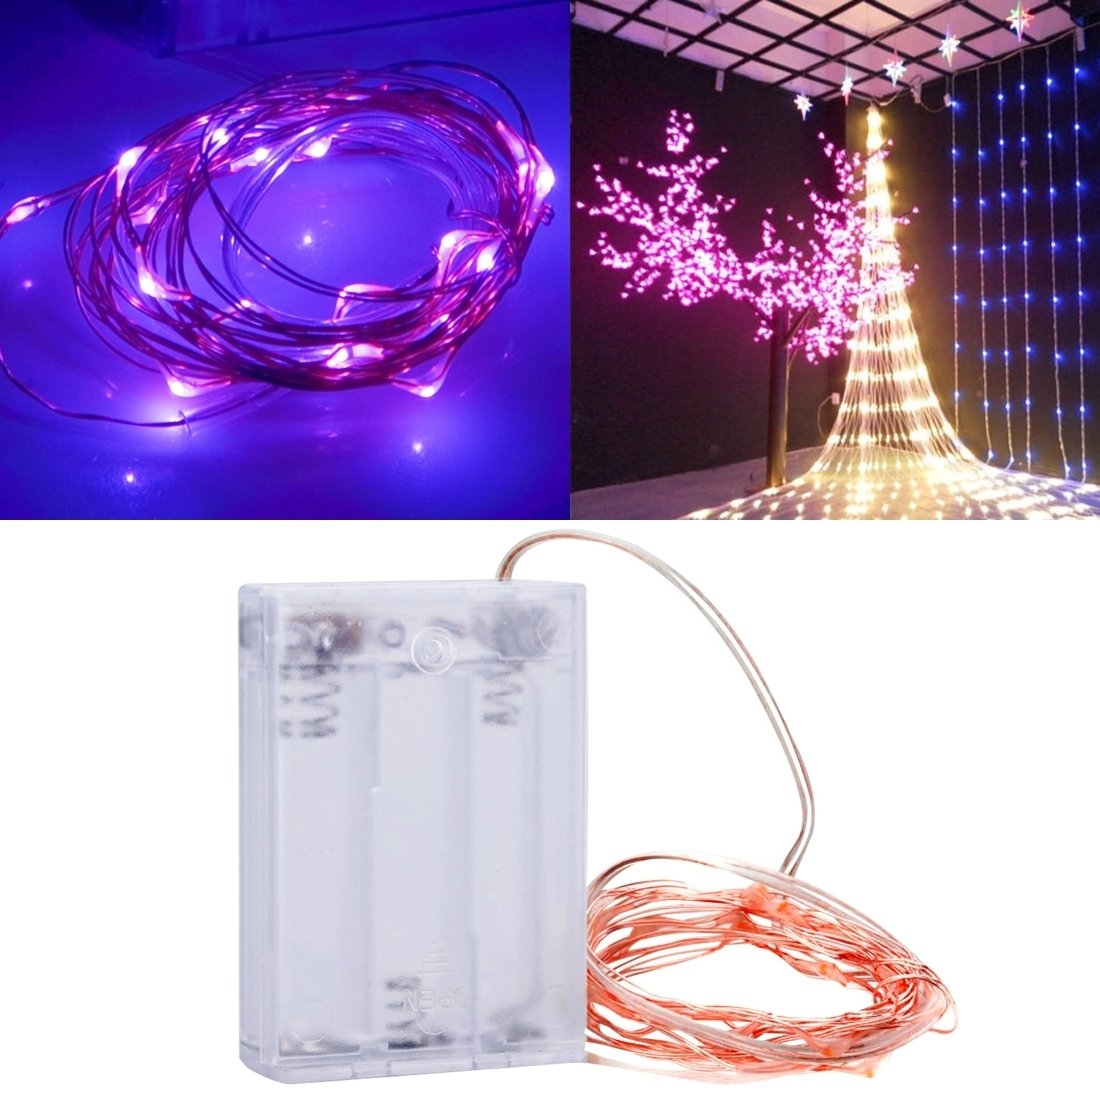 Perfect Home 2m 3 x AA Battery Powered 100LM SMD-0603 LED Copper String Light/Decorative Light Strip, Pink Light, Size: 200x0.5x0.3cm Durable (SKU : LED1121P) by Perfect Home (Image #1)